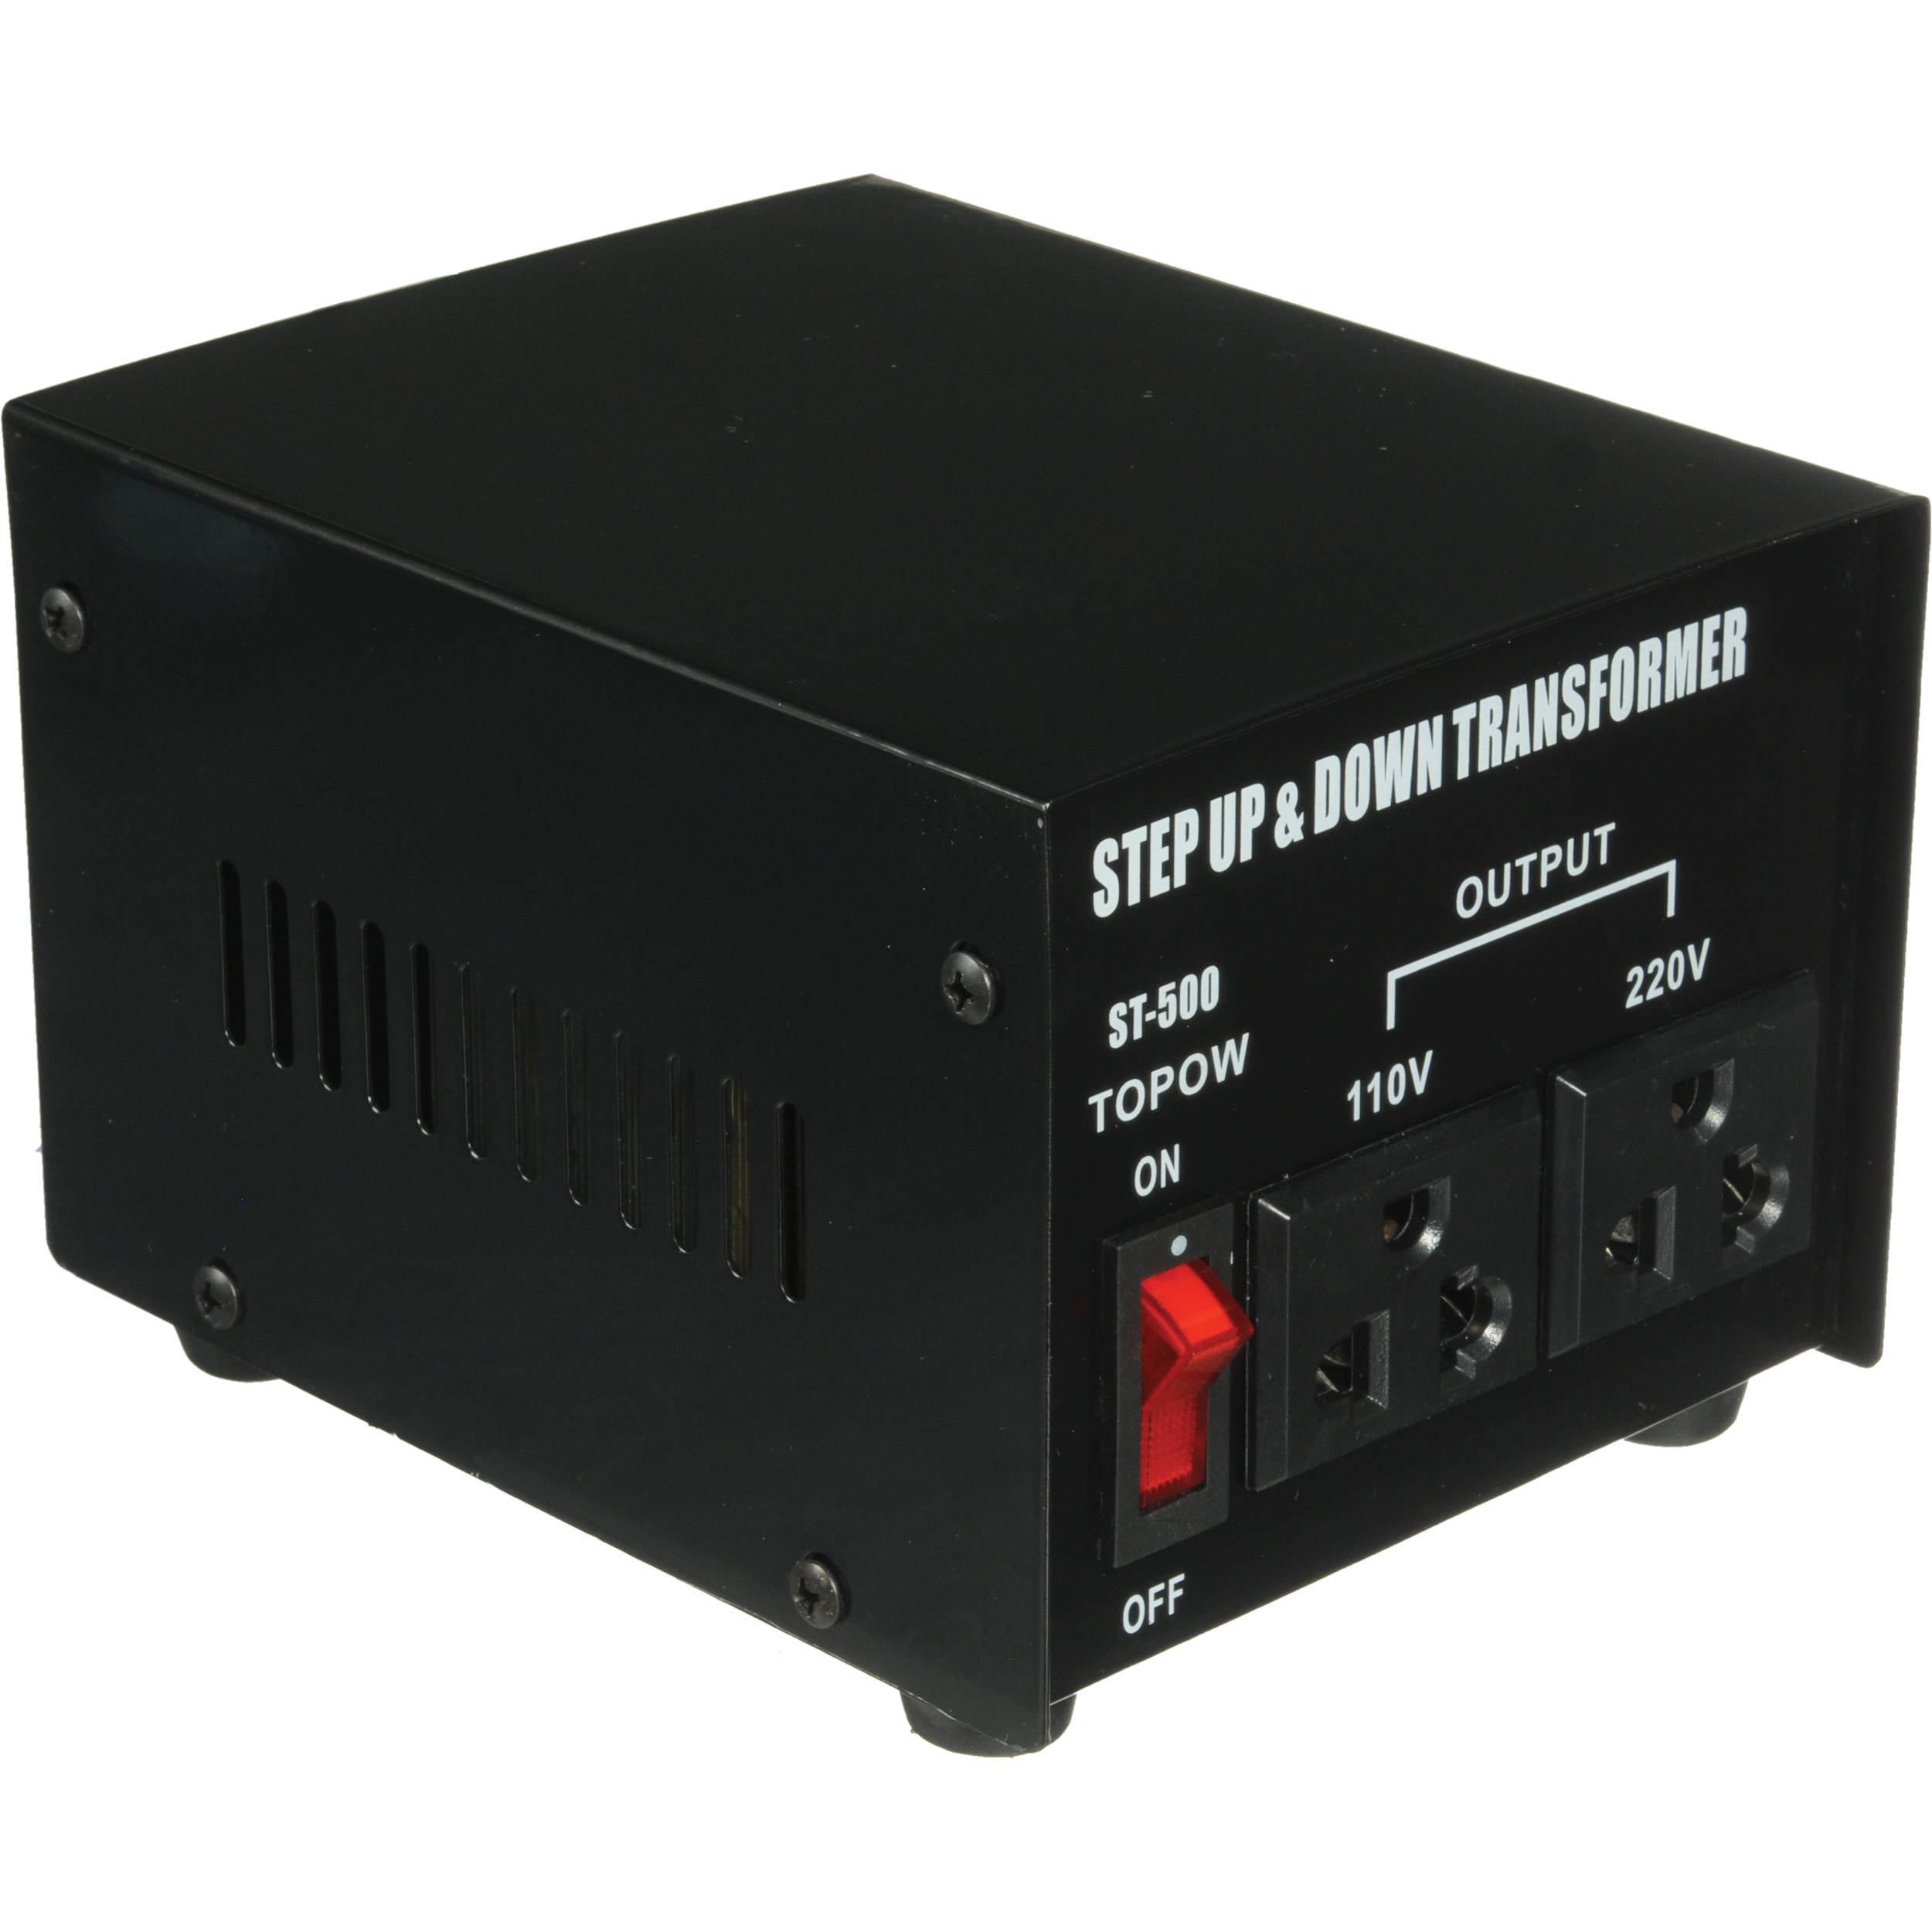 Fuse Box With Step Down Transformer Free Download 220v Topow St 500 Up 500w St500 Bh Photo 3 Phase